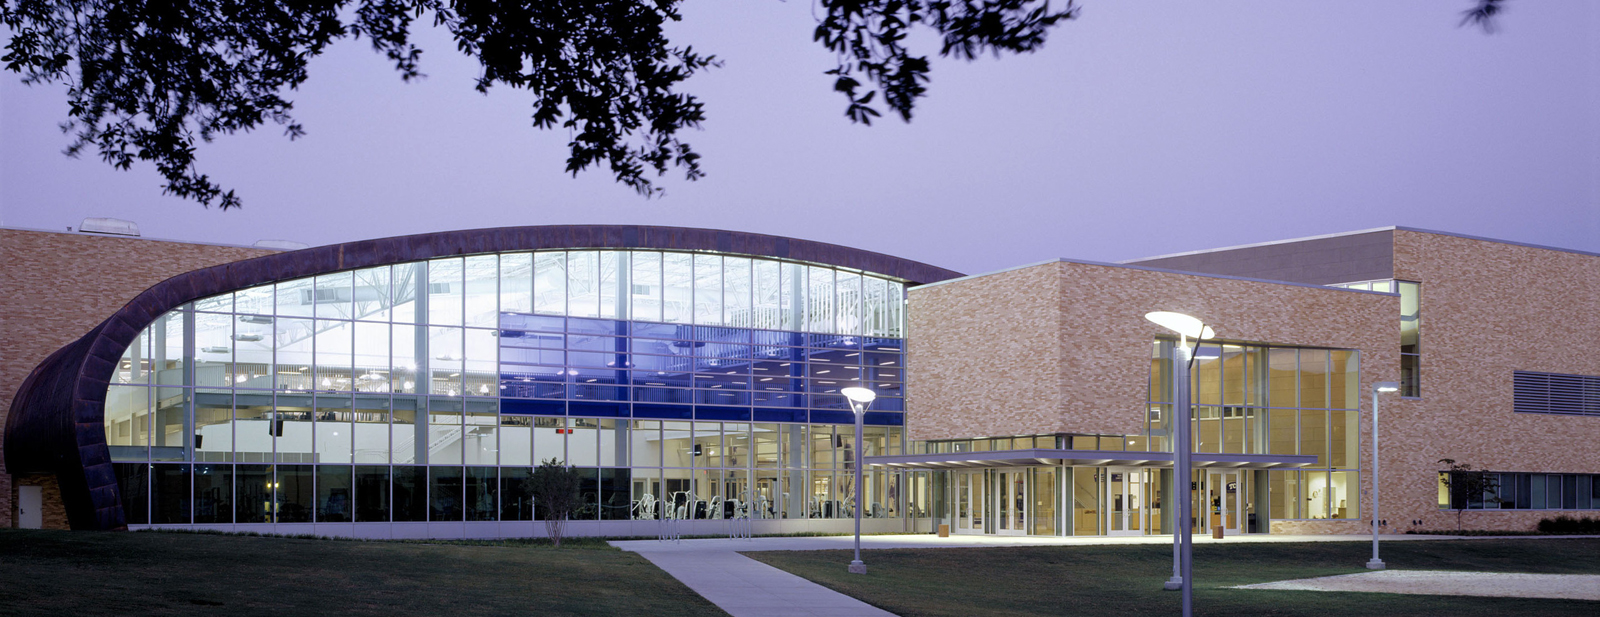 Texas Christian University, Student Recreation Center